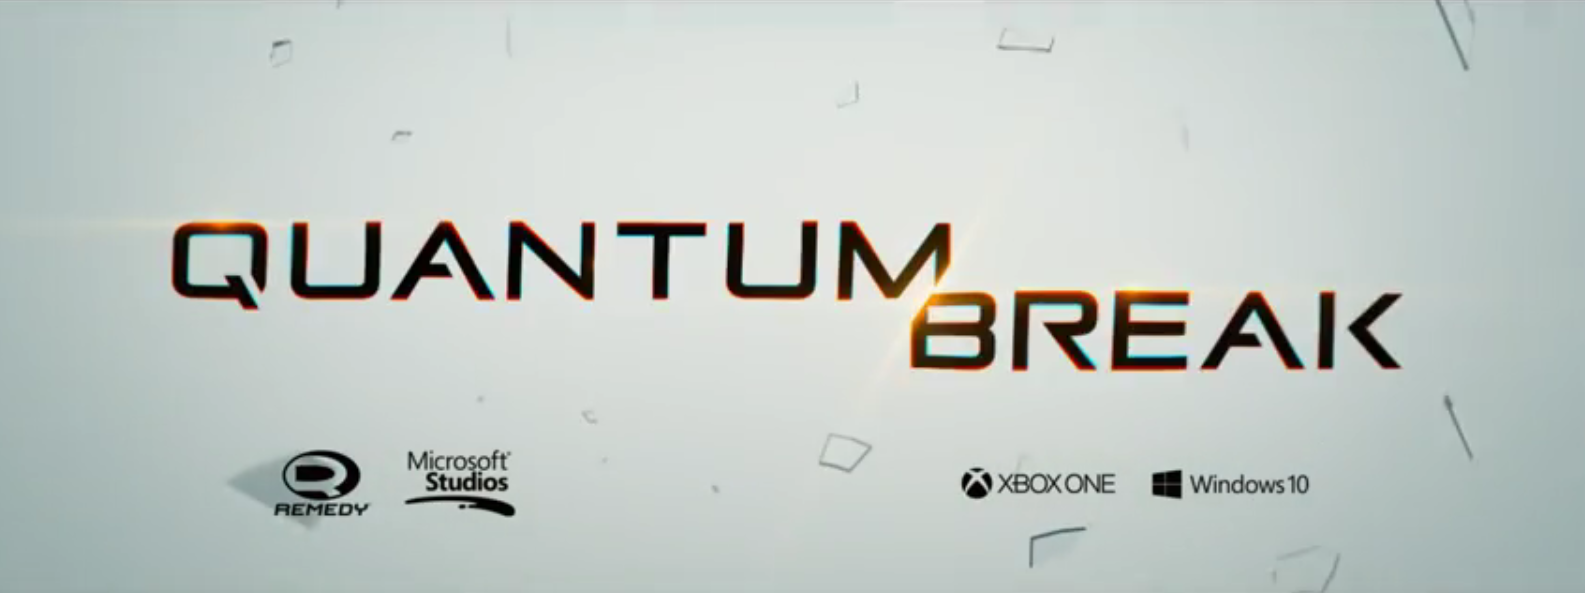 Quantum break 14.02.2016 image 1